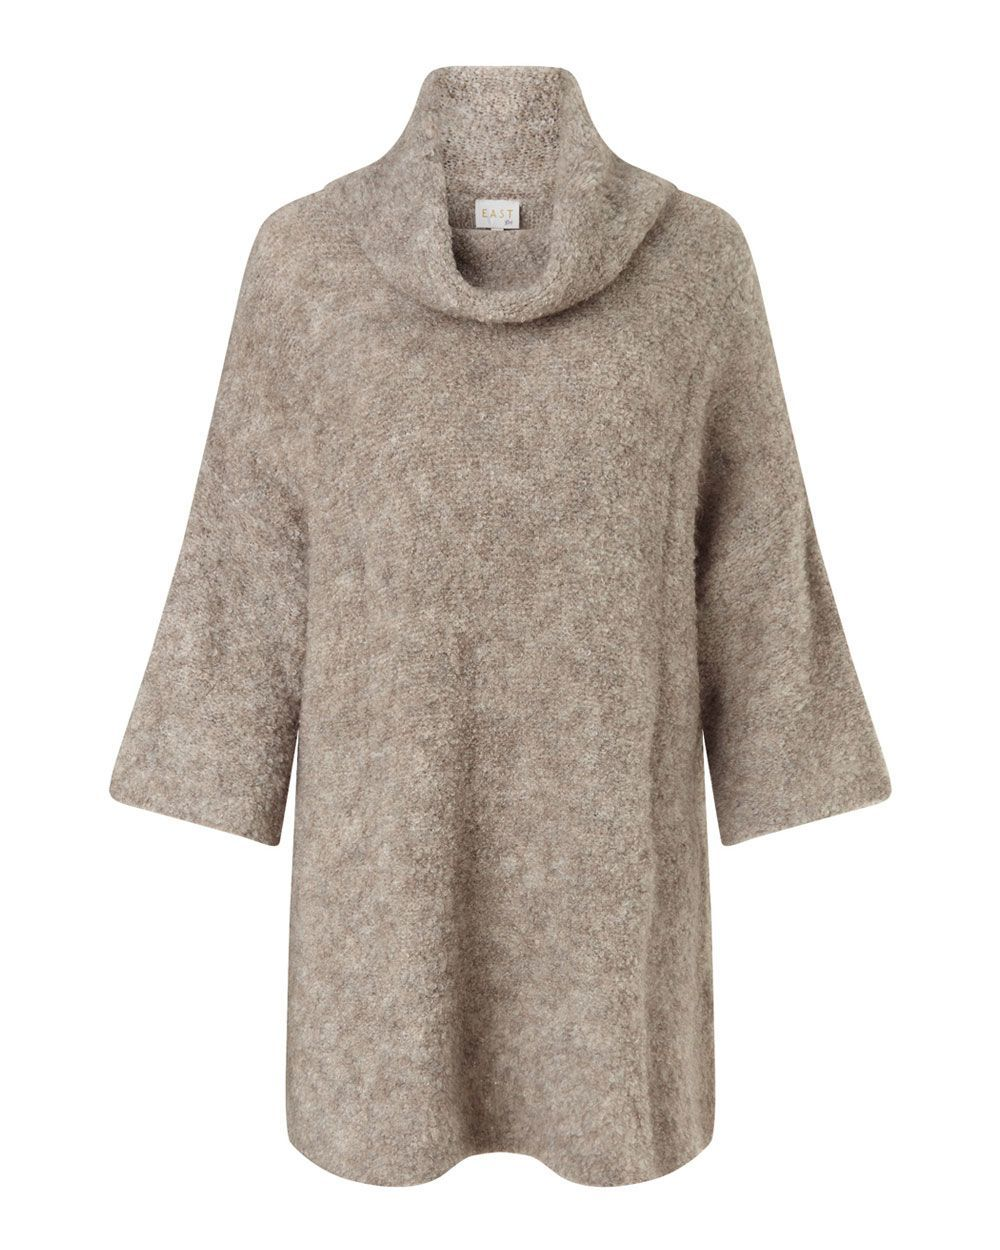 Cowl Neck Boucle Jumper, Stone - neckline: cowl/draped neck; pattern: plain; length: below the bottom; style: standard; predominant colour: camel; occasions: casual, creative work; fibres: wool - mix; fit: loose; sleeve length: 3/4 length; sleeve style: standard; texture group: knits/crochet; pattern type: knitted - fine stitch; season: a/w 2015; wardrobe: basic